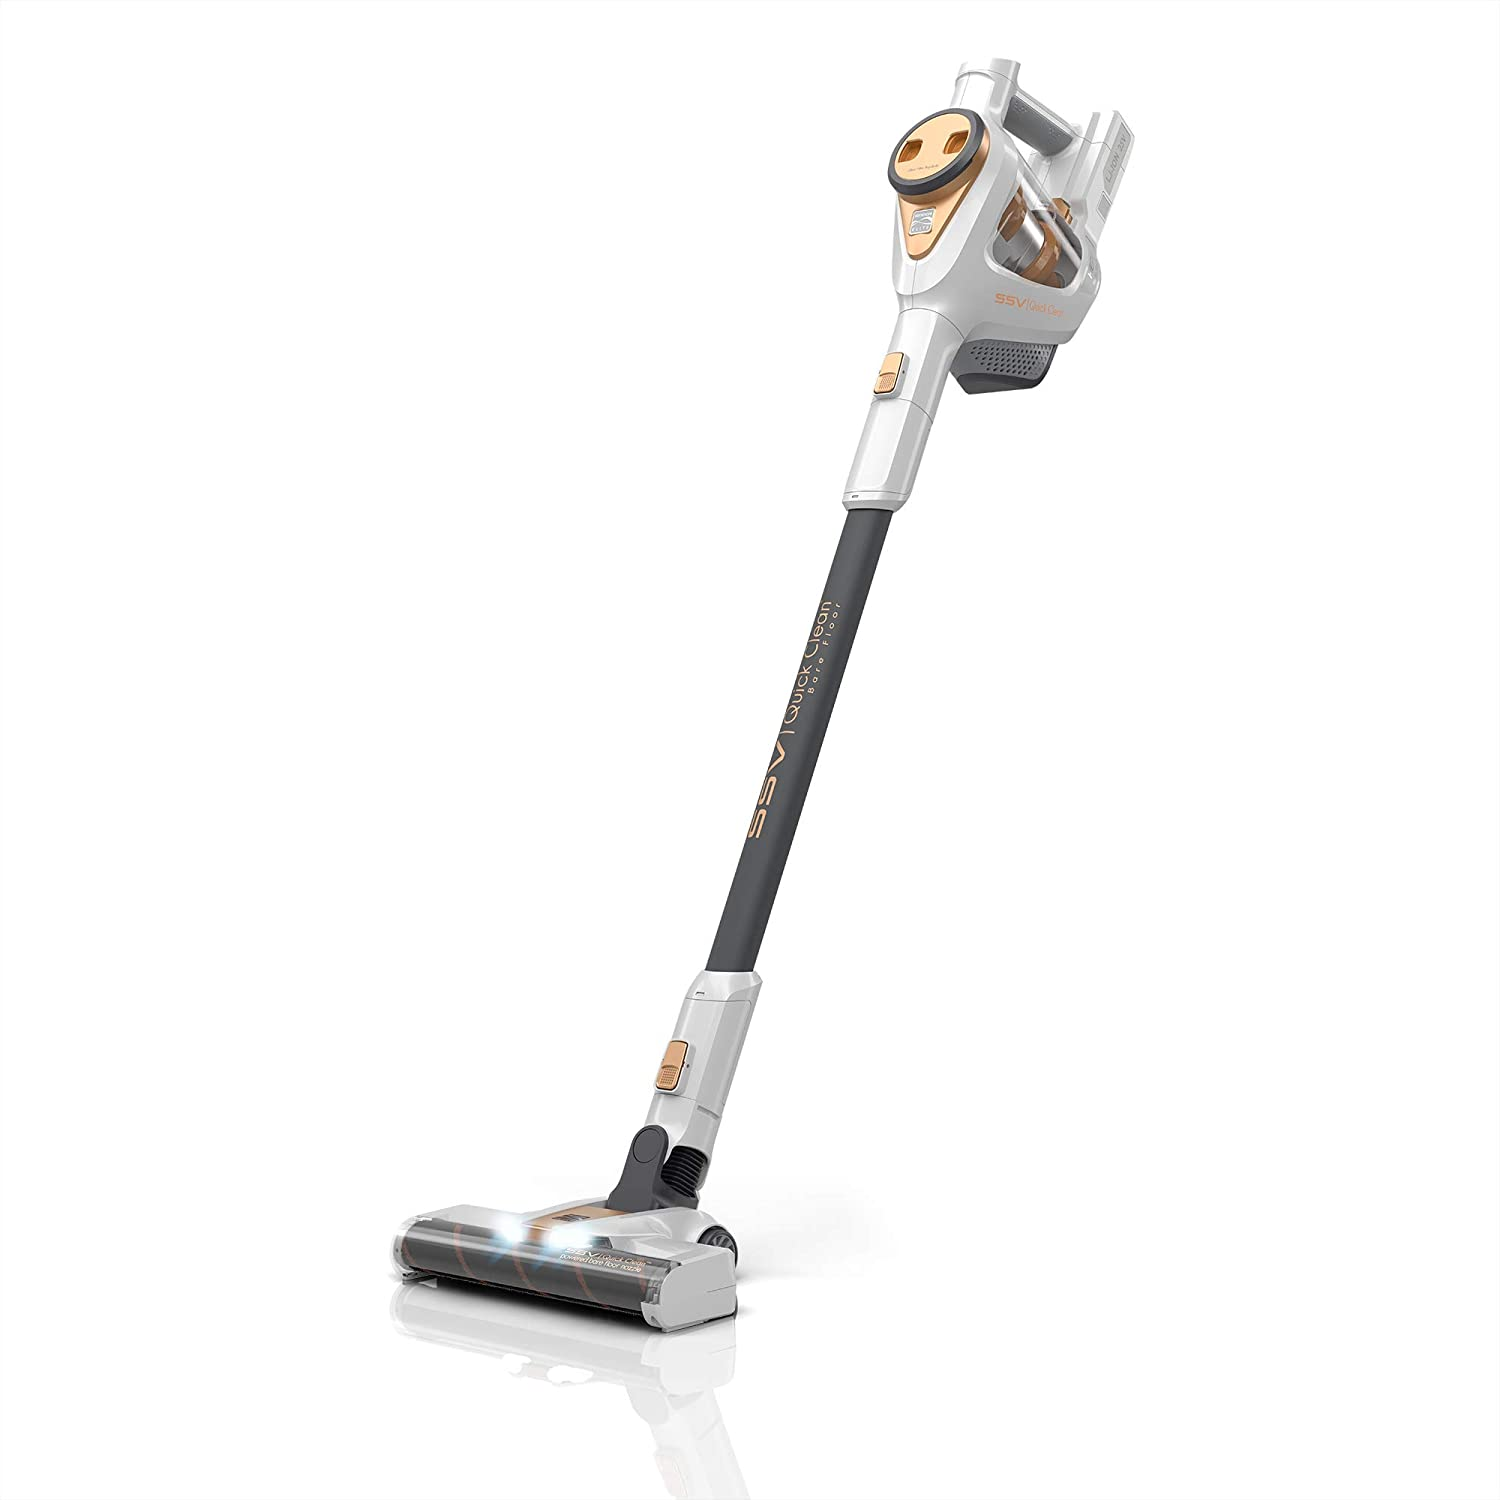 Kenmore DS6025 Elite SSV Quick Clean Cordless Bagless 2-in-1 Stick & Handheld Vacuum